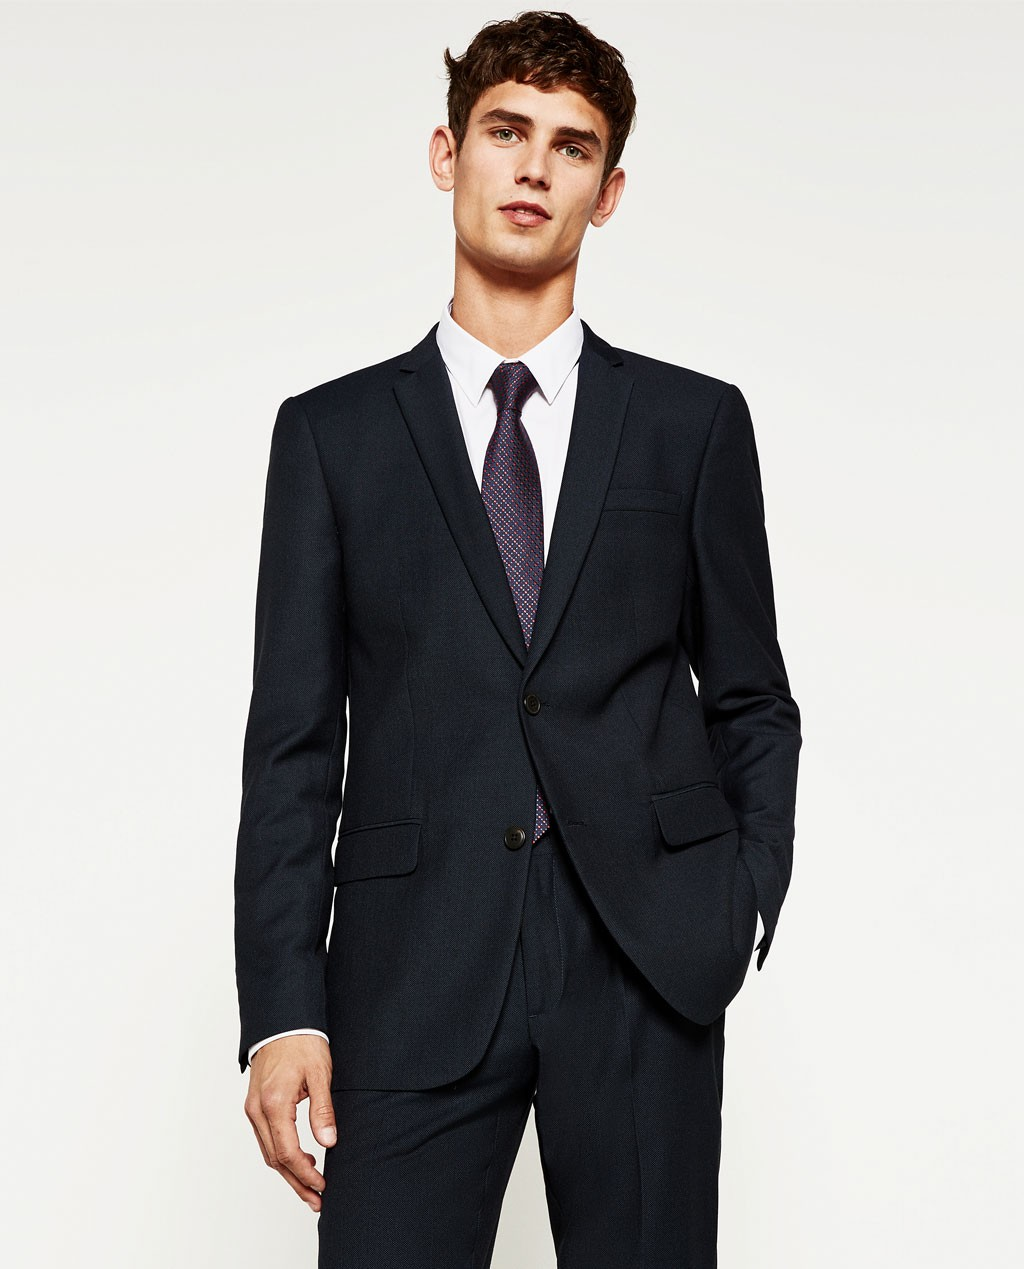 Bargain - 50% OFF - Outerwear-MAN-SALE | ZARA United States